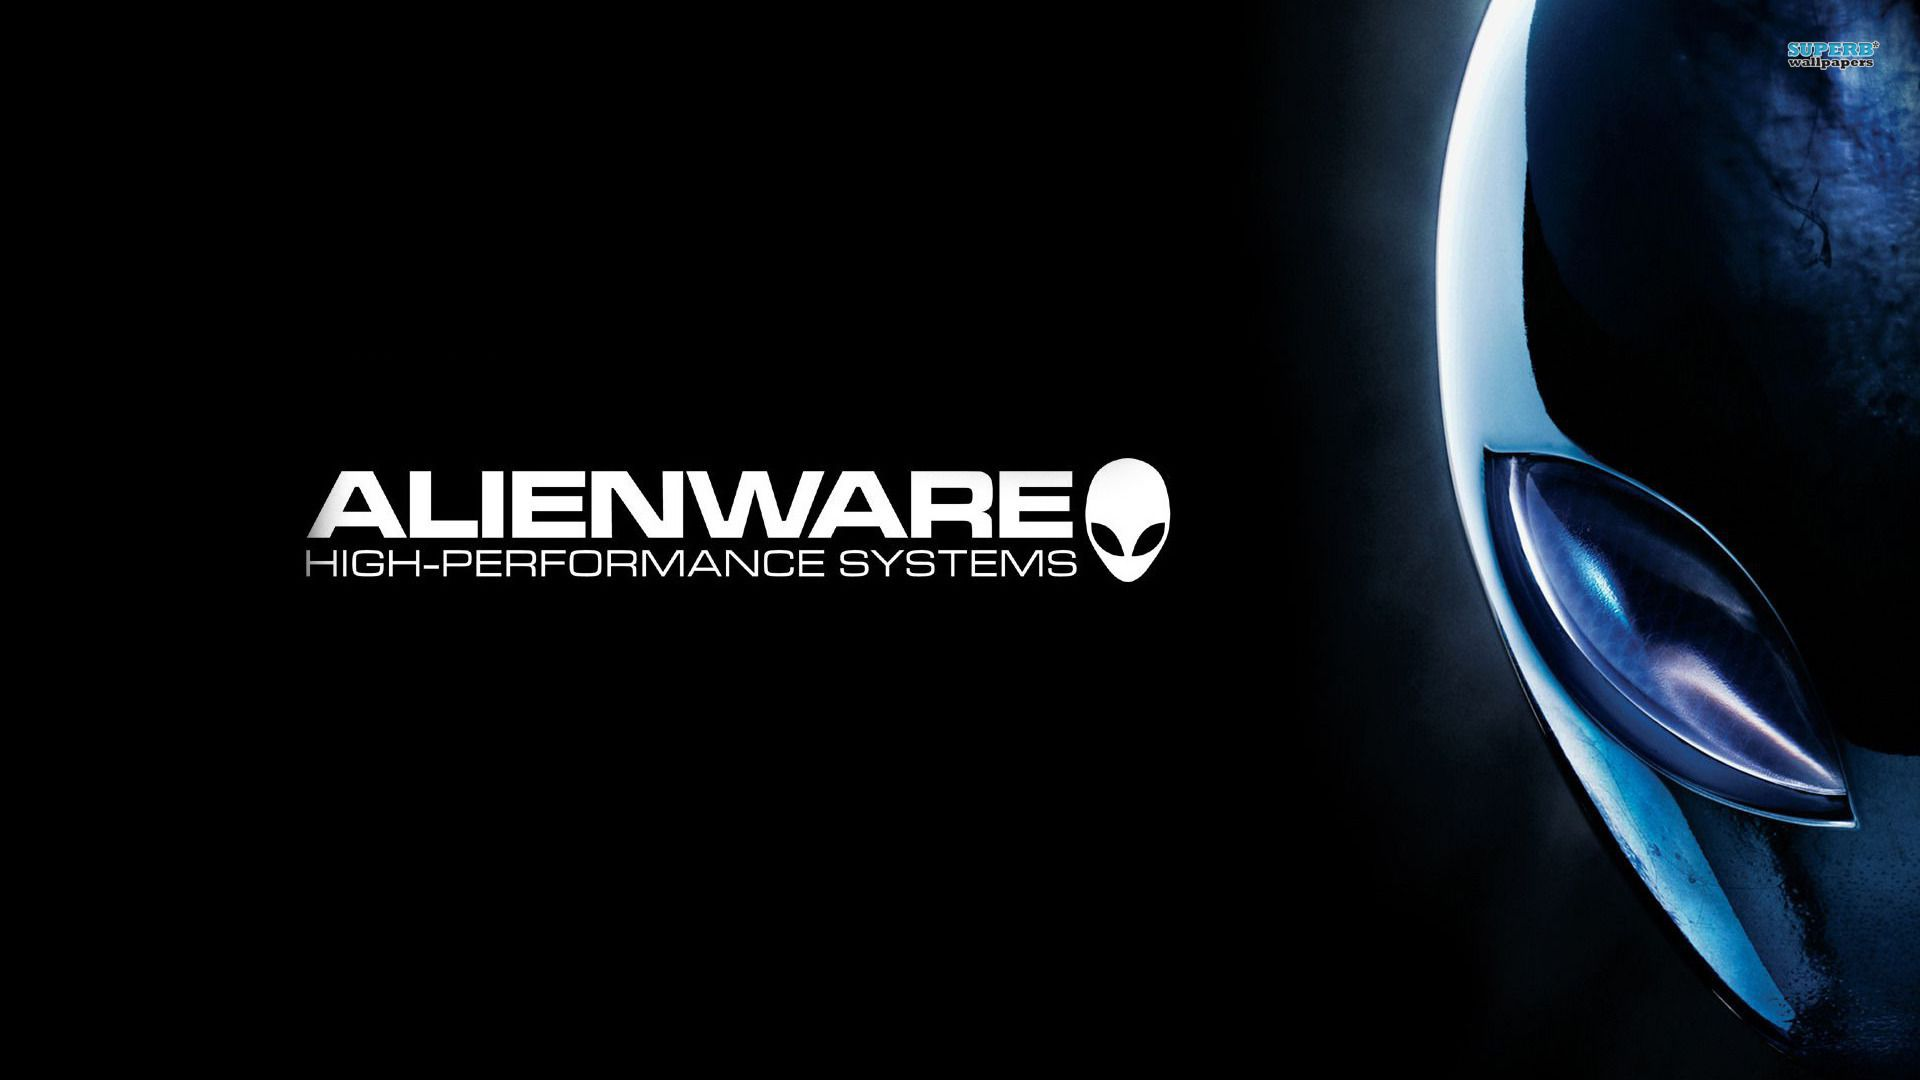 Alienware Wallpaper HD Widescreen For Your PC Desktop